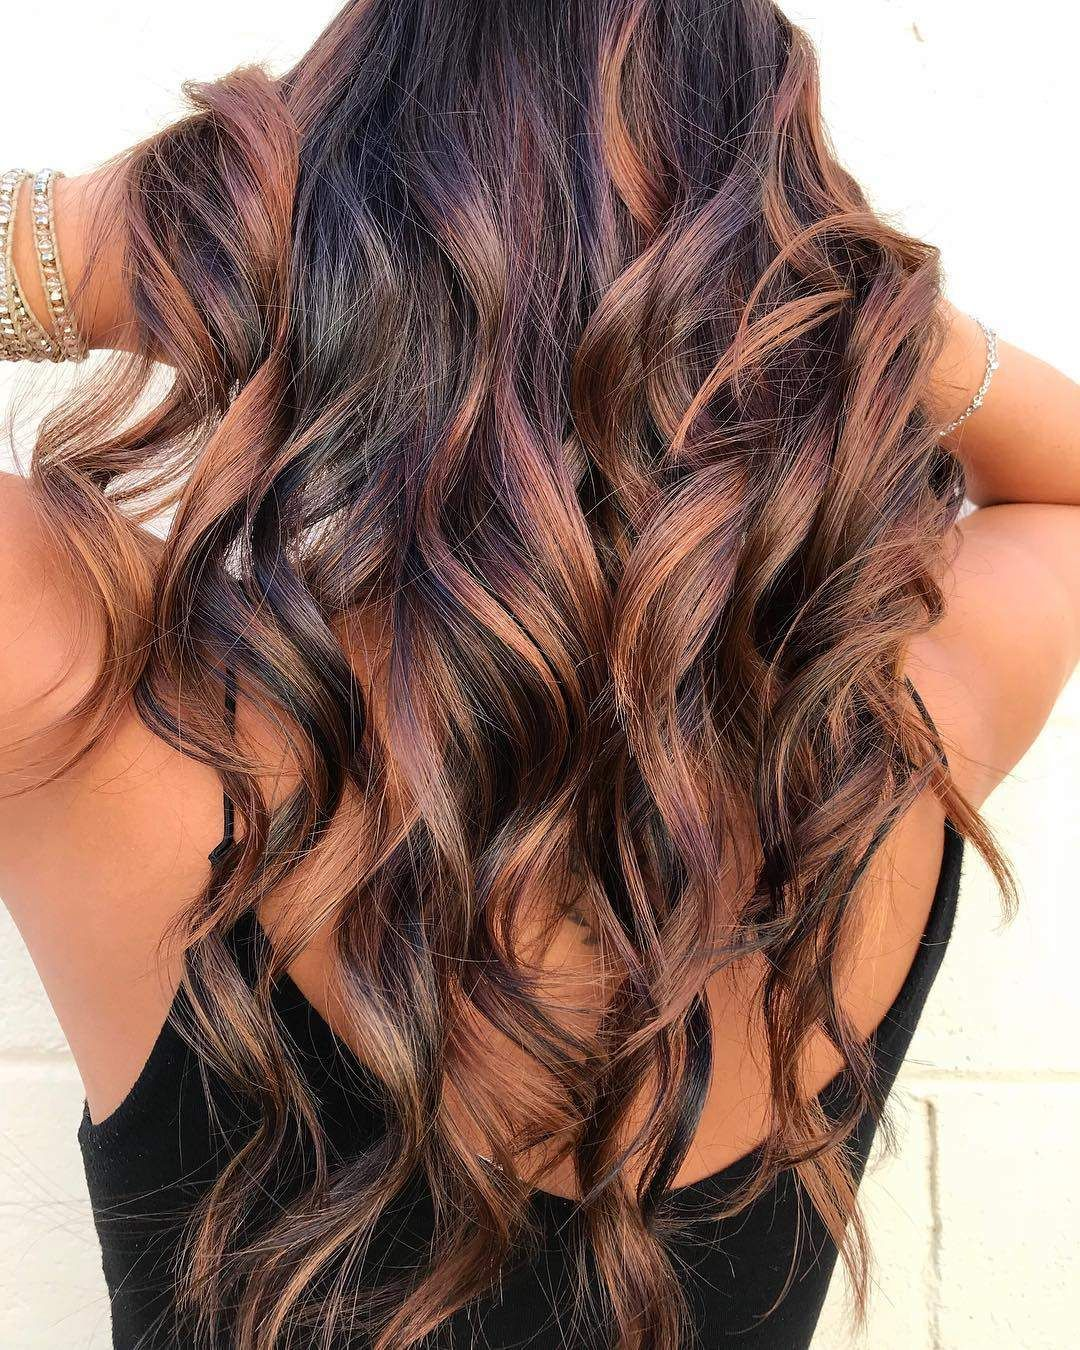 9 Fall Hair Color Trends for Brunettes That You Need to Try ASAP #fallhaircolors